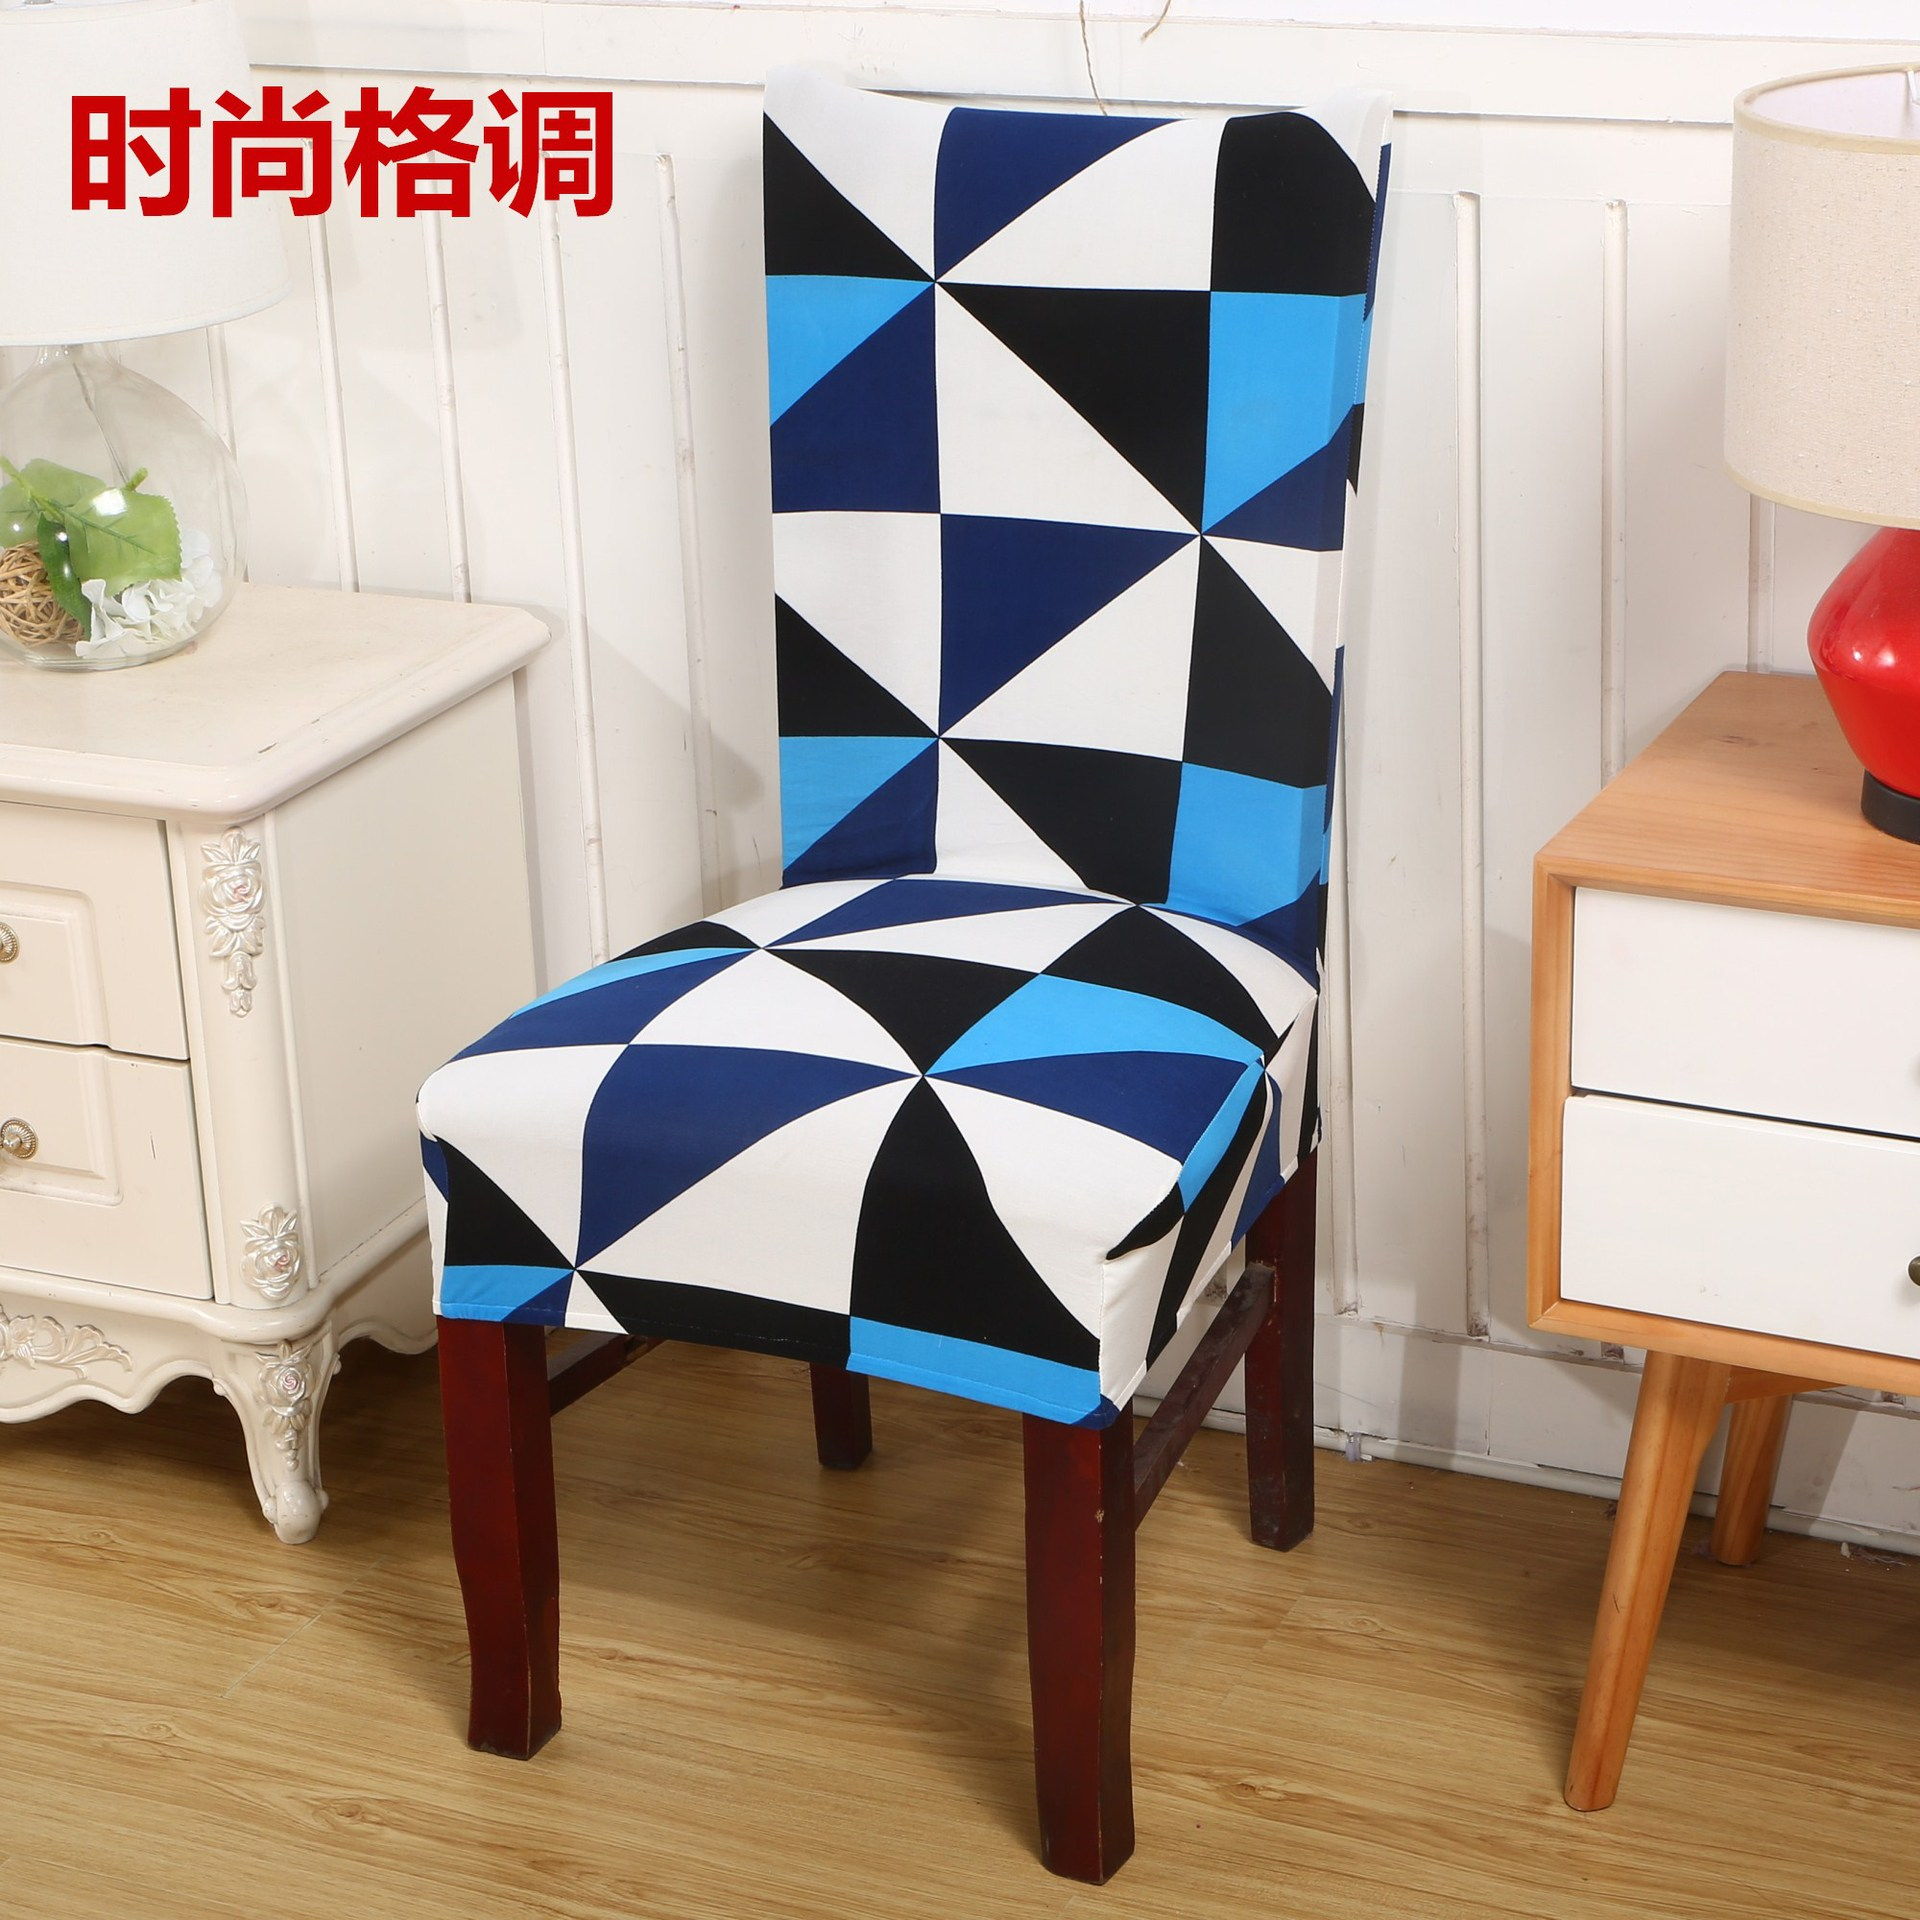 Wedding Chair Covers Alibaba Reclining Oversized Removable Dining Room Stool Cover Pattern Printing